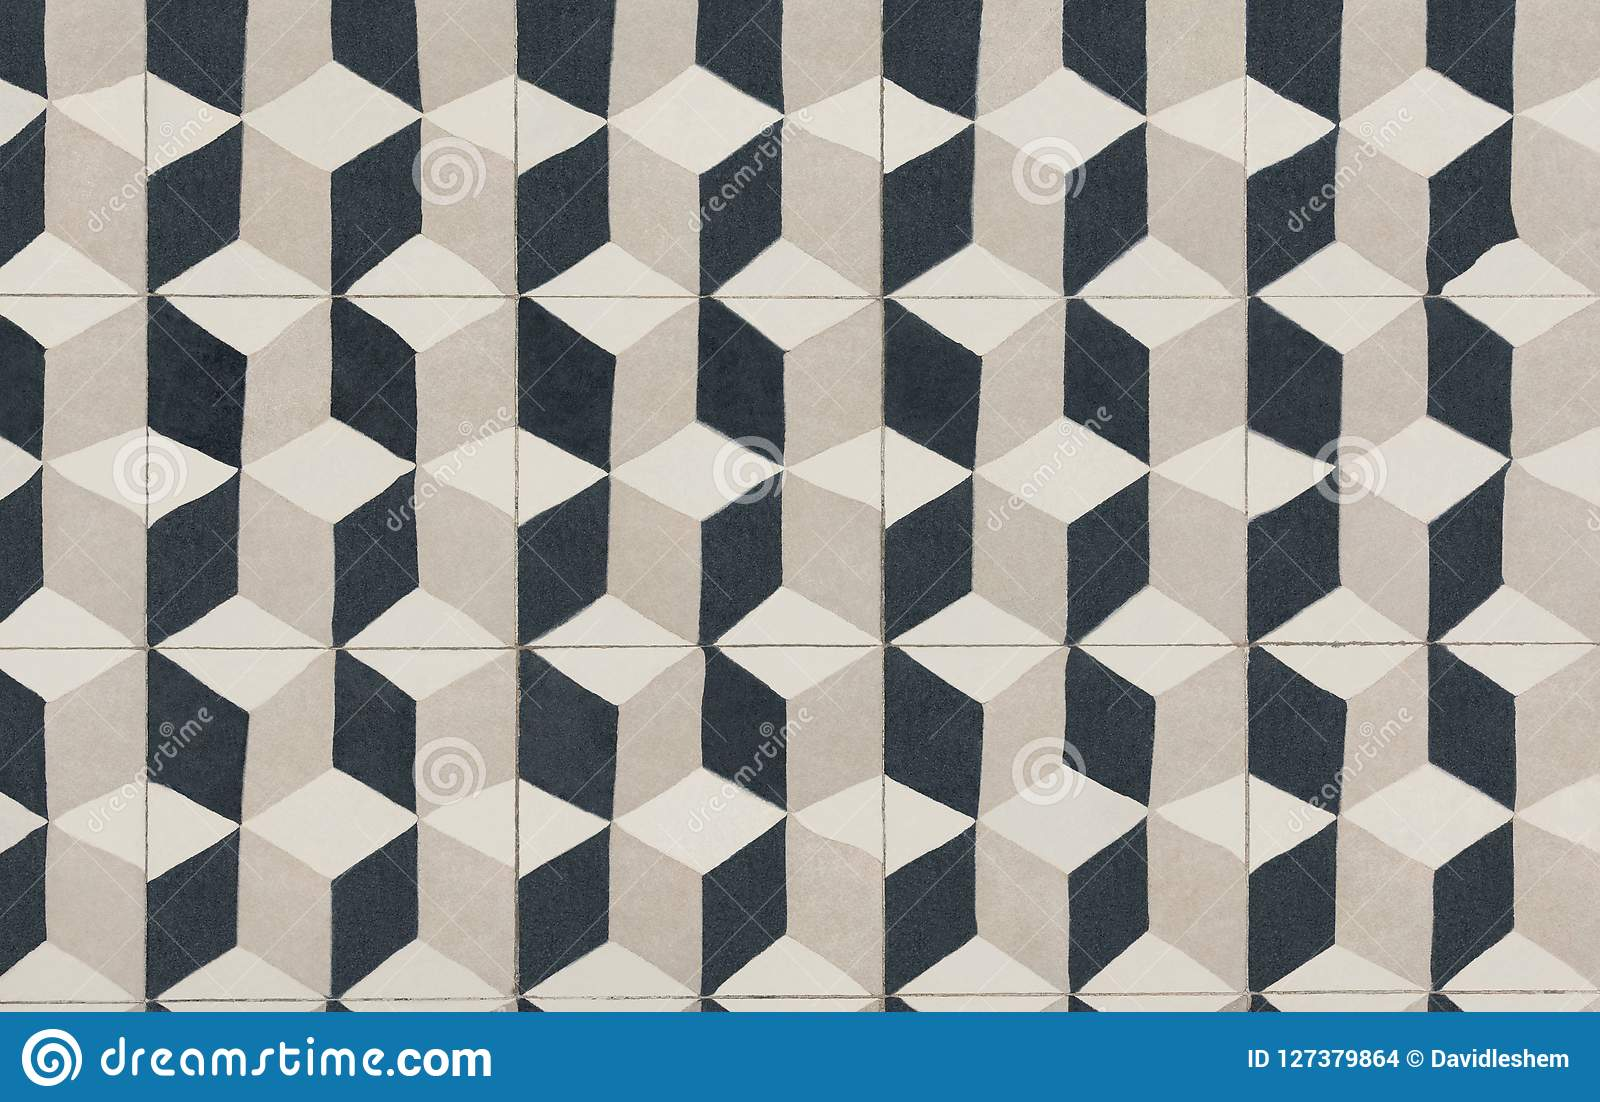 hight resolution of unique tile design islam patterns escher like repetition tiled floor